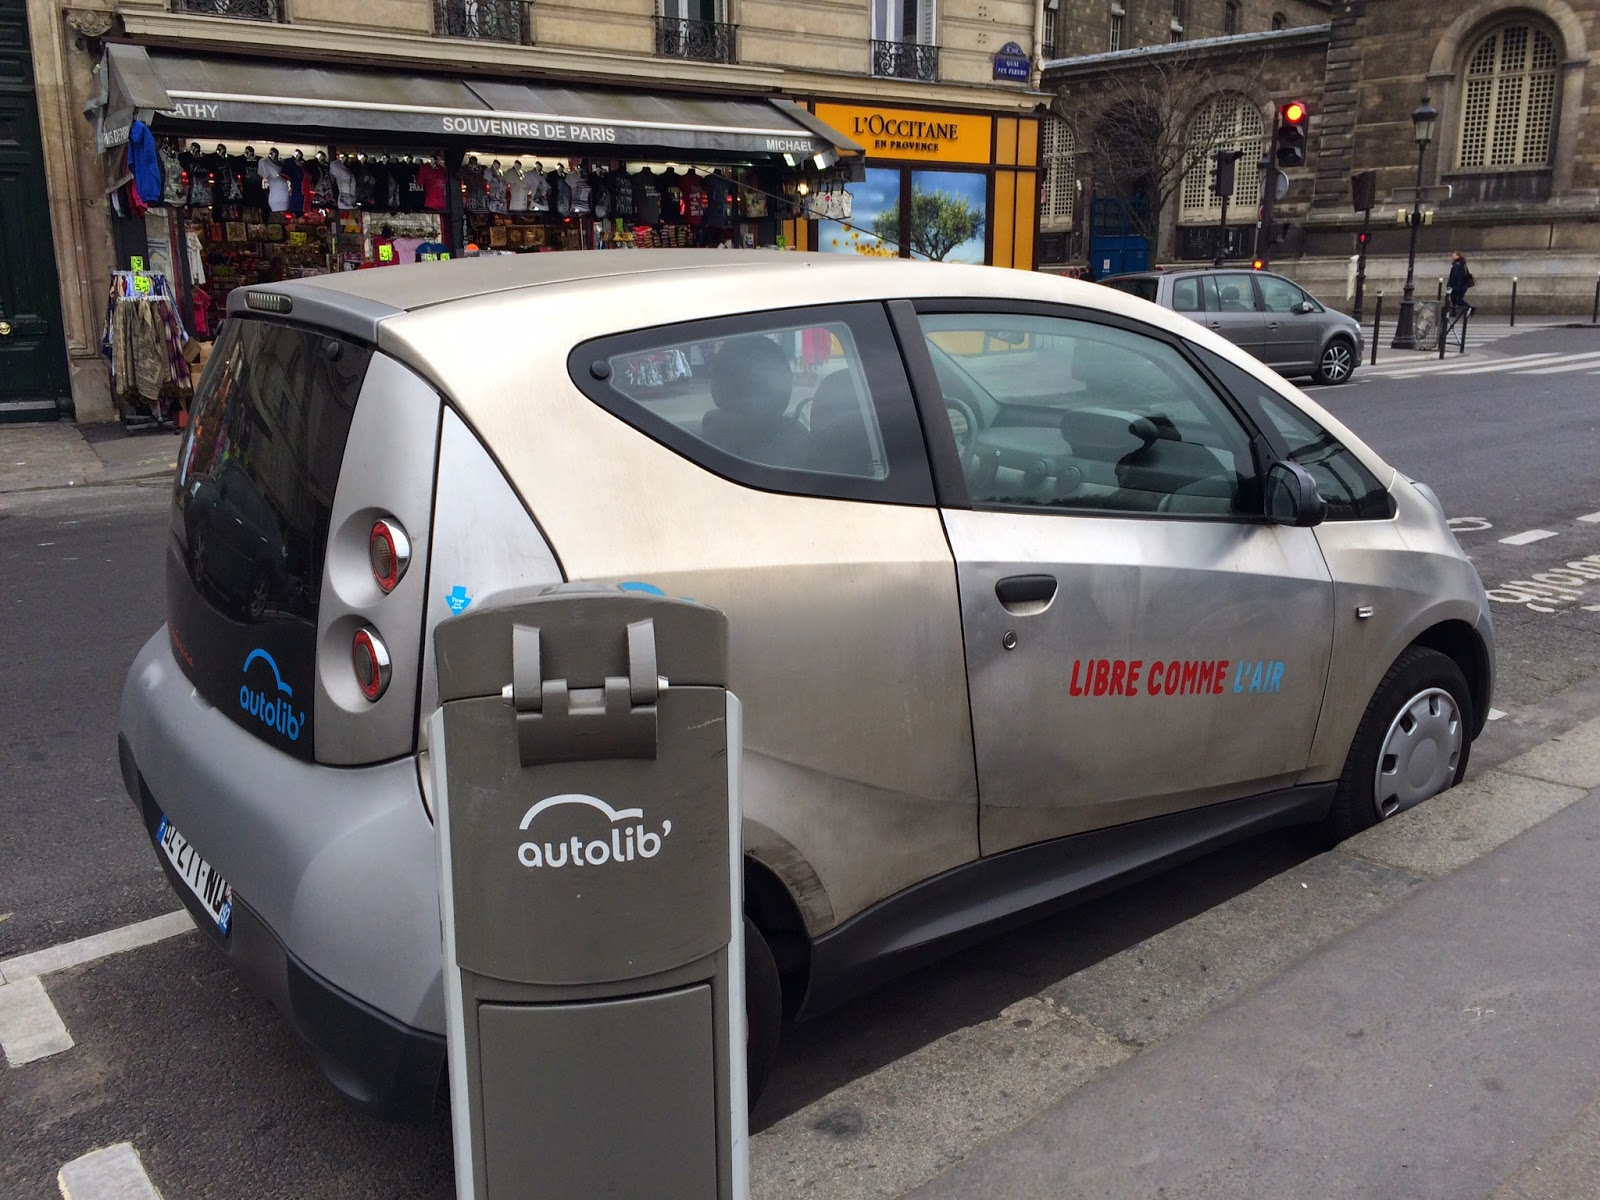 Pic of electric car recharging in Paris street